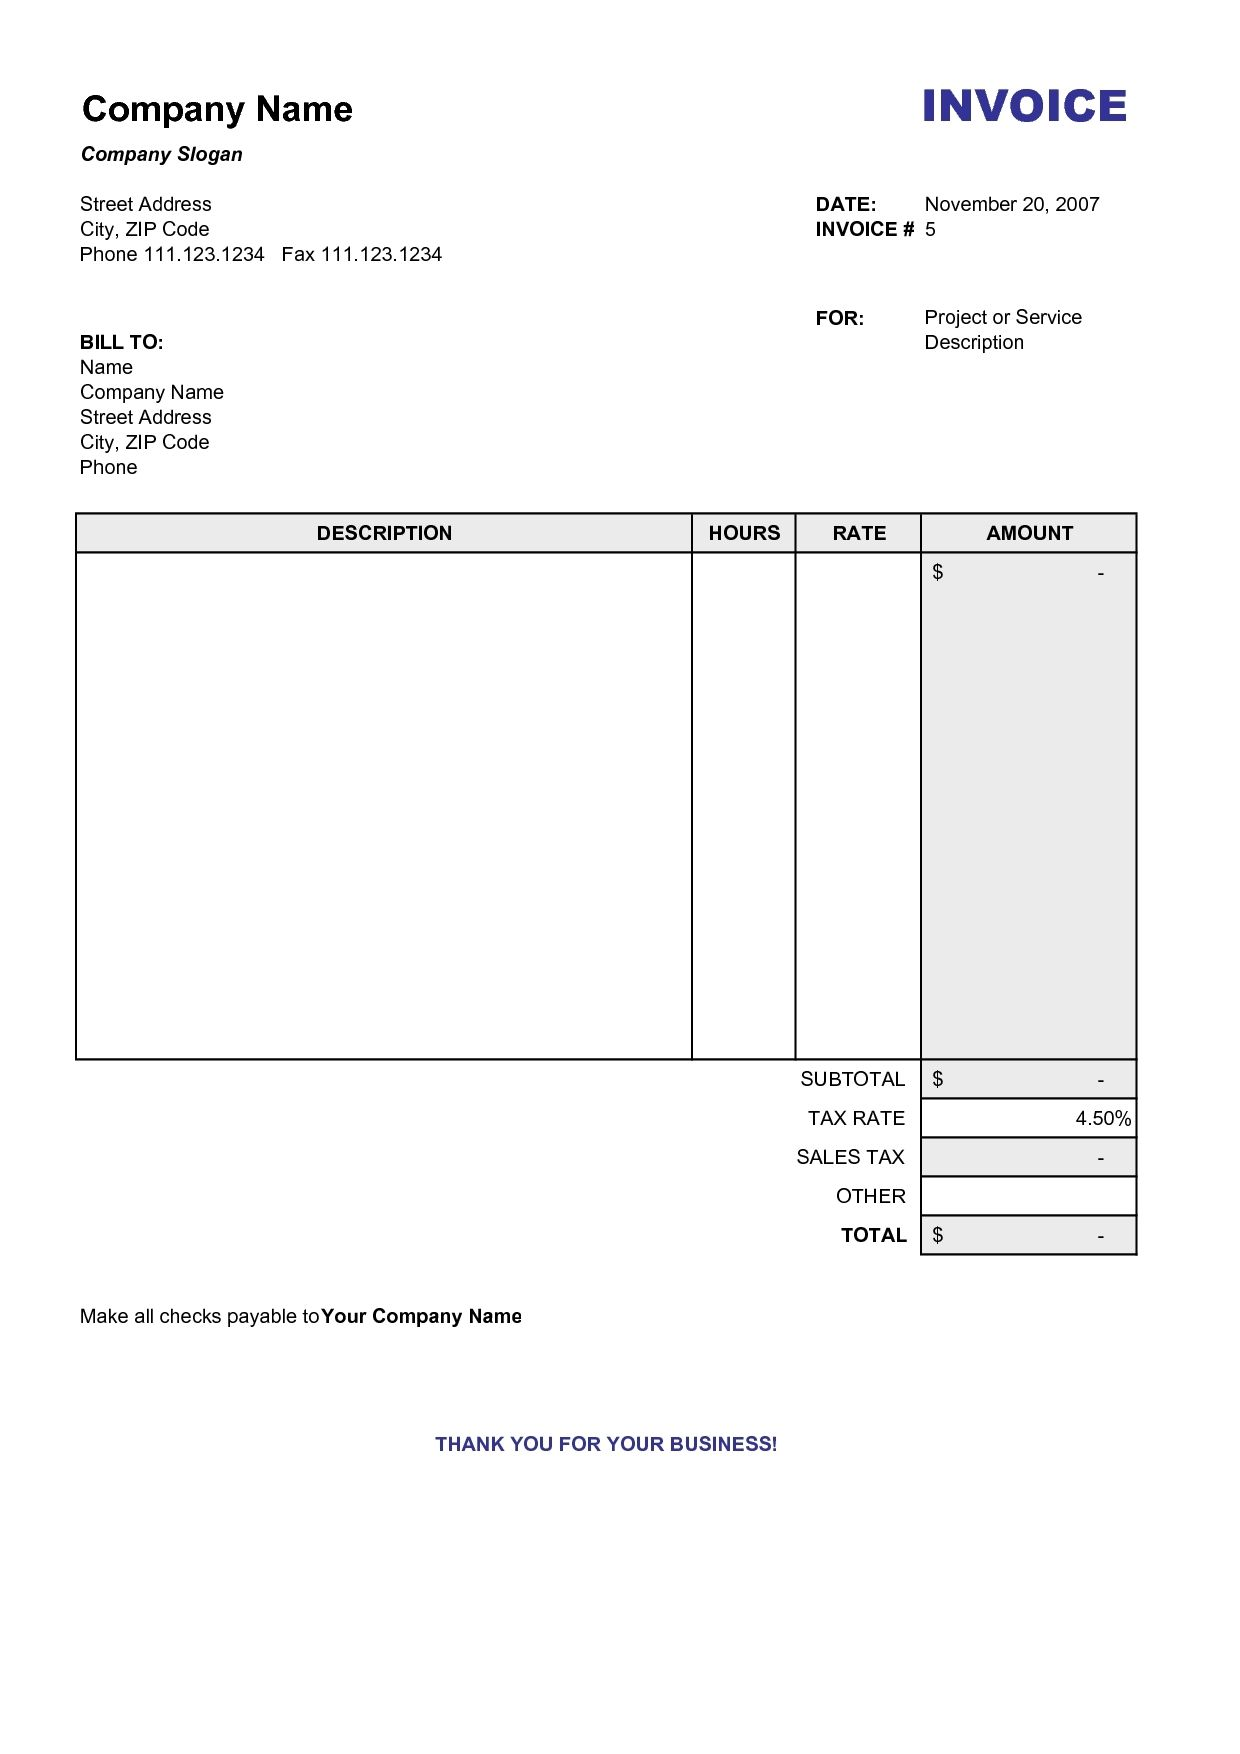 Copy Of A Blank Invoice Invoice Template Free Copy Of Blank - Copy of blank invoice